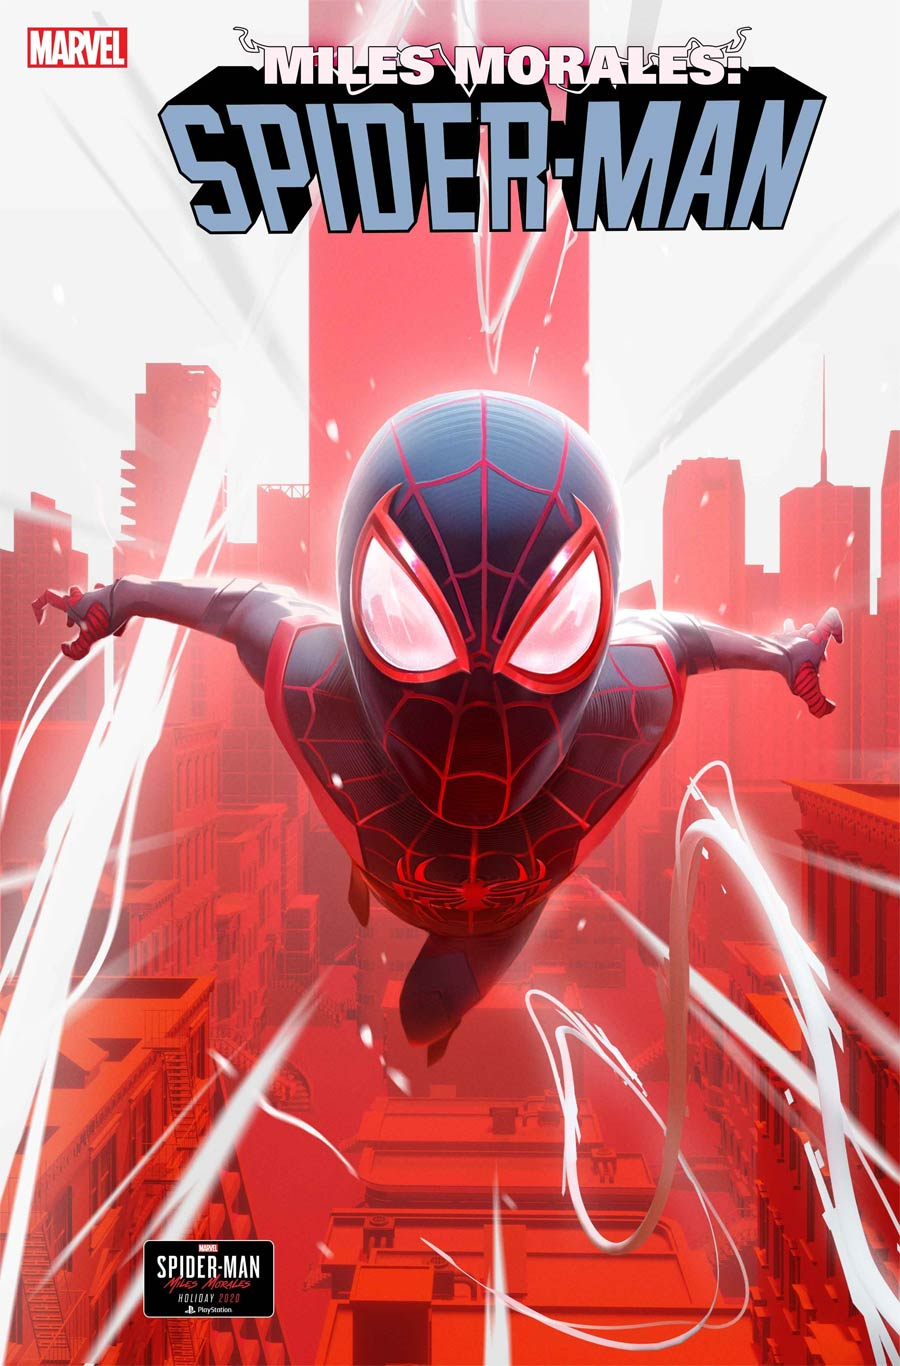 Miles Morales Spider-Man #21 Cover C Incentive Nick Schumacher Marvels Spider-Man Miles Morales Variant Cover